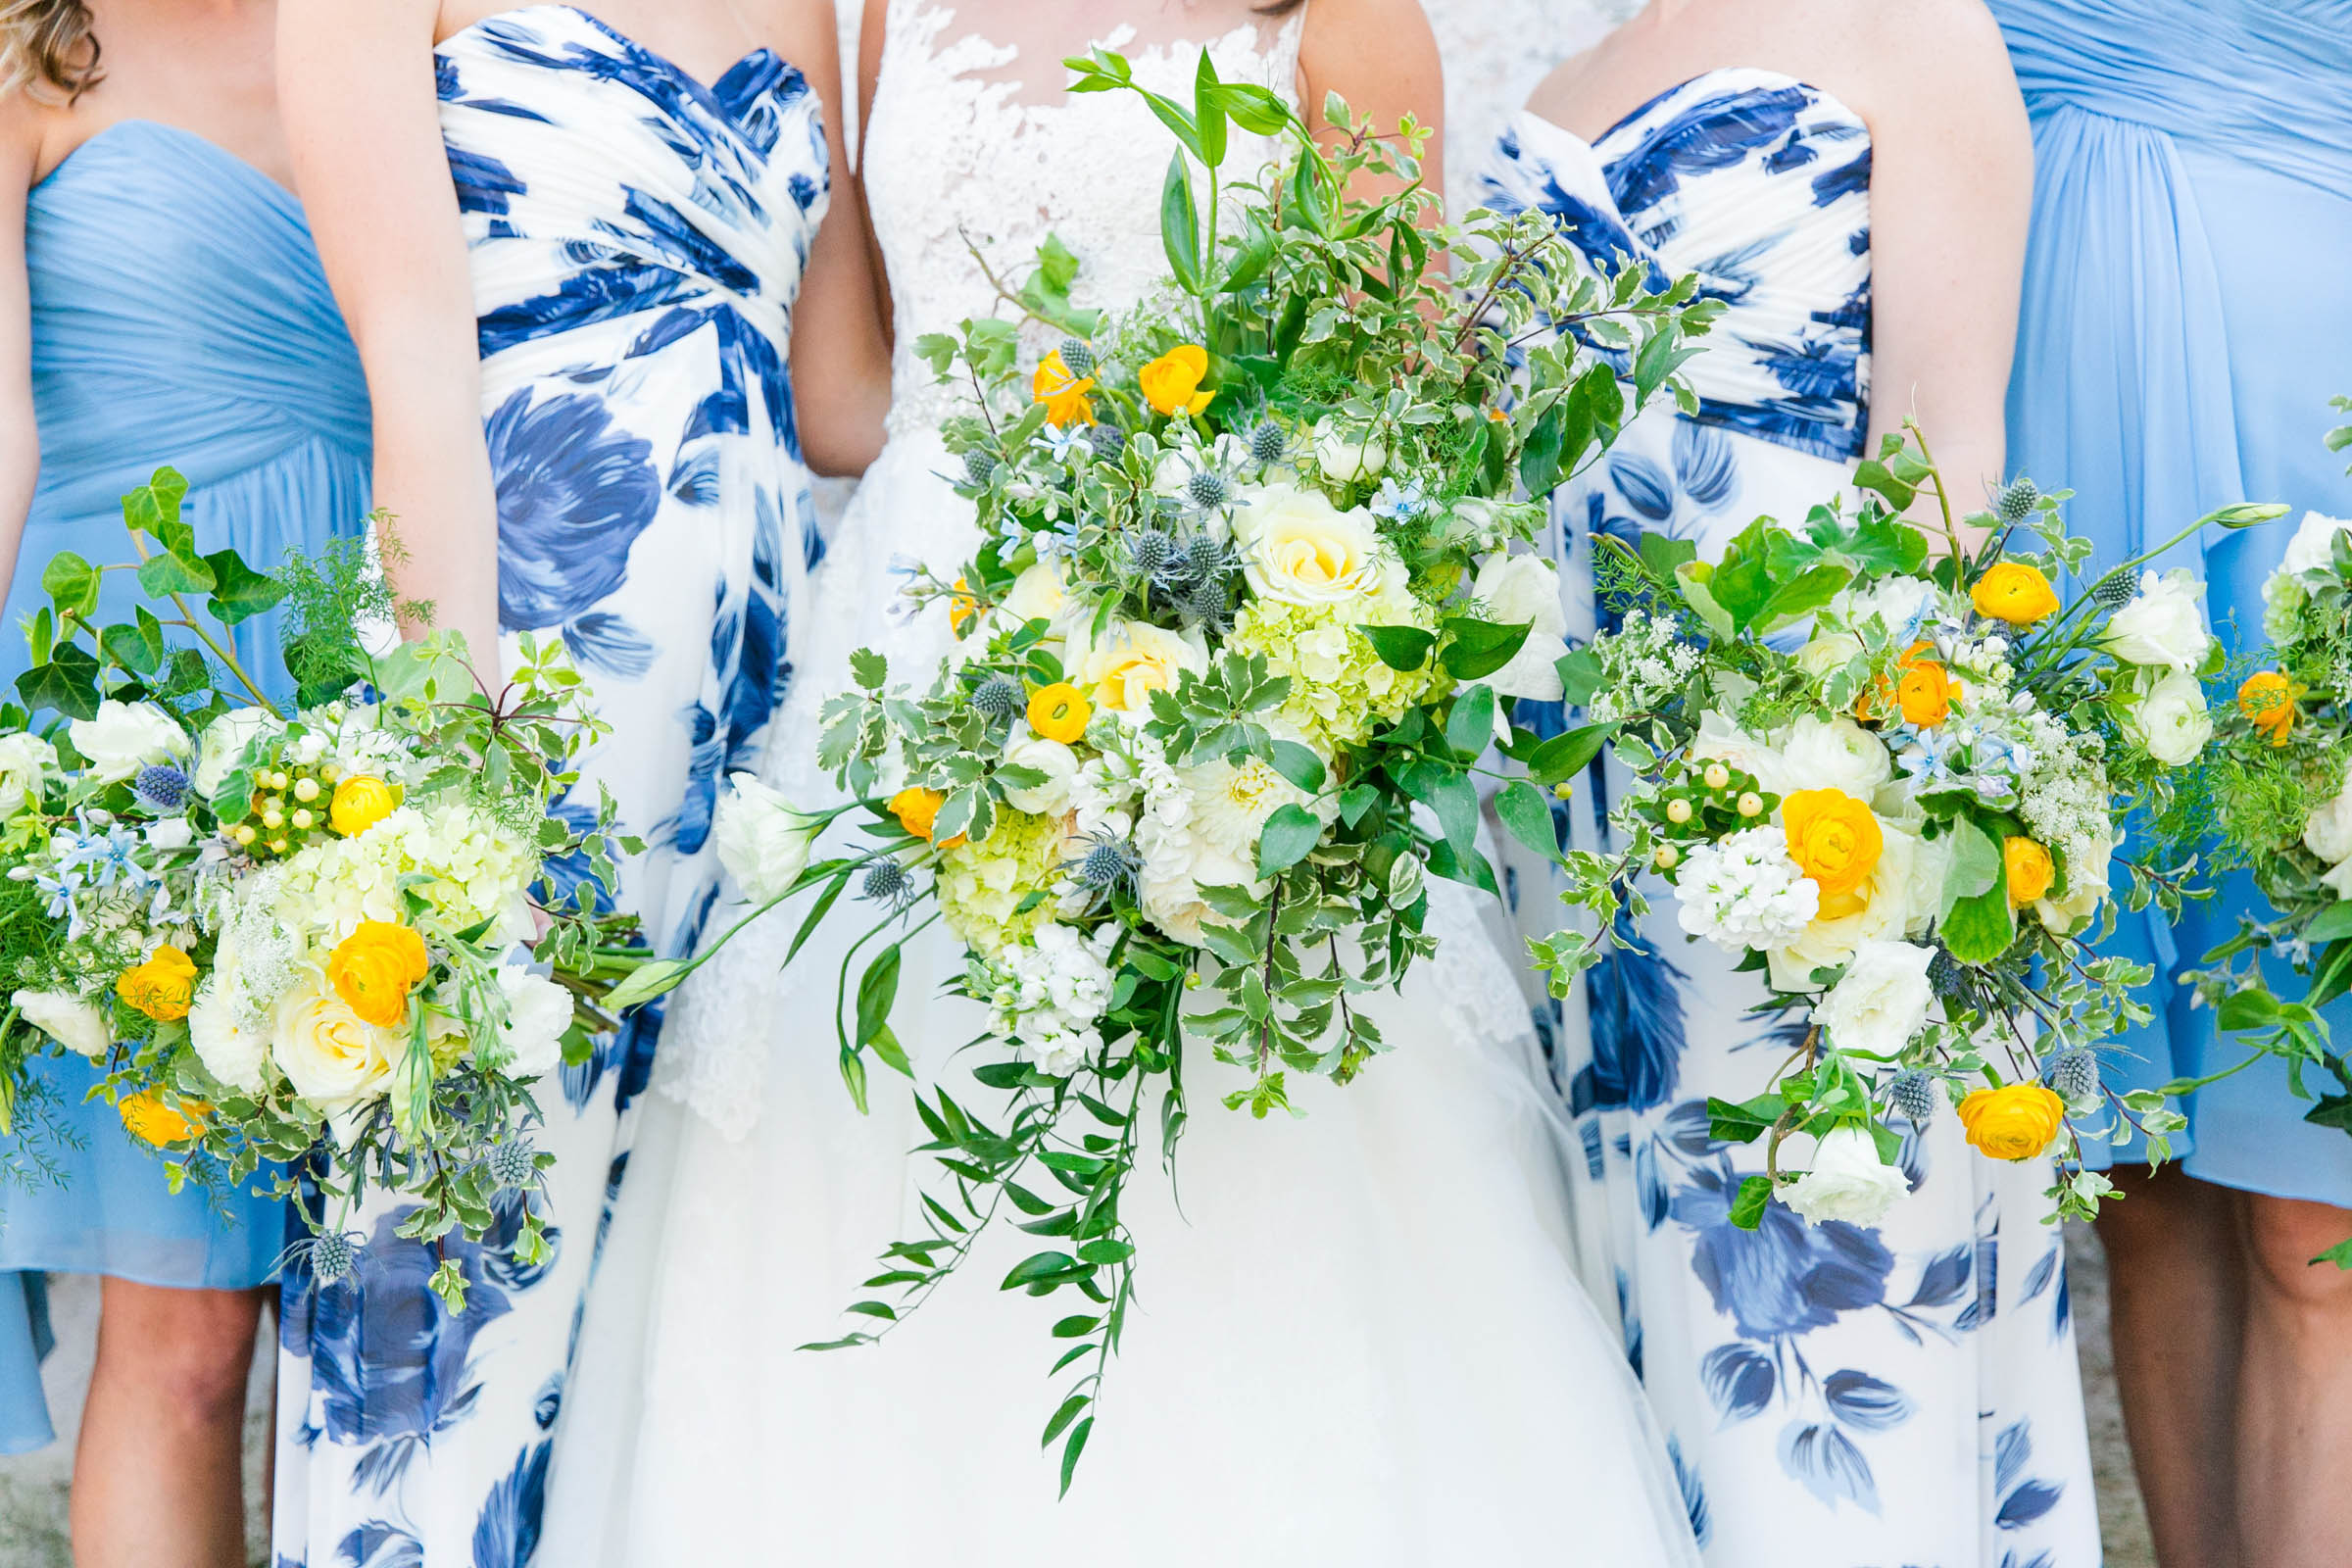 Bridal party fashion with bouquets - photo by Dana Cubbage Weddings